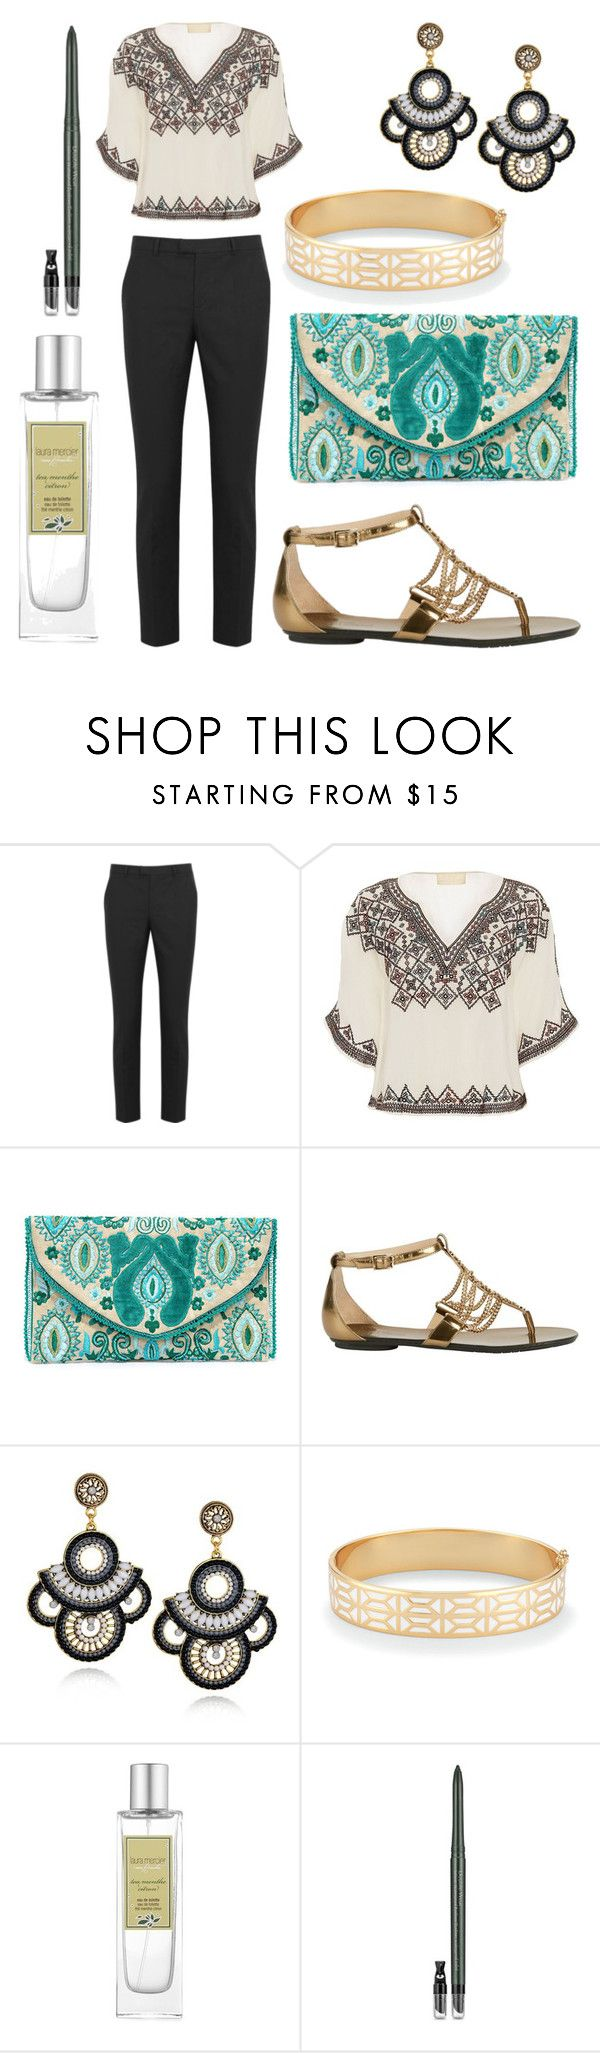 """""""Smart Casual Dinner Outfit: Black Trousers"""" by michellexueyi ❤ liked on Polyvore featuring RED Valentino, Love Sam, Lulu*s, Jimmy Choo, Stella & Dot, Laura Mercier and Estée Lauder"""